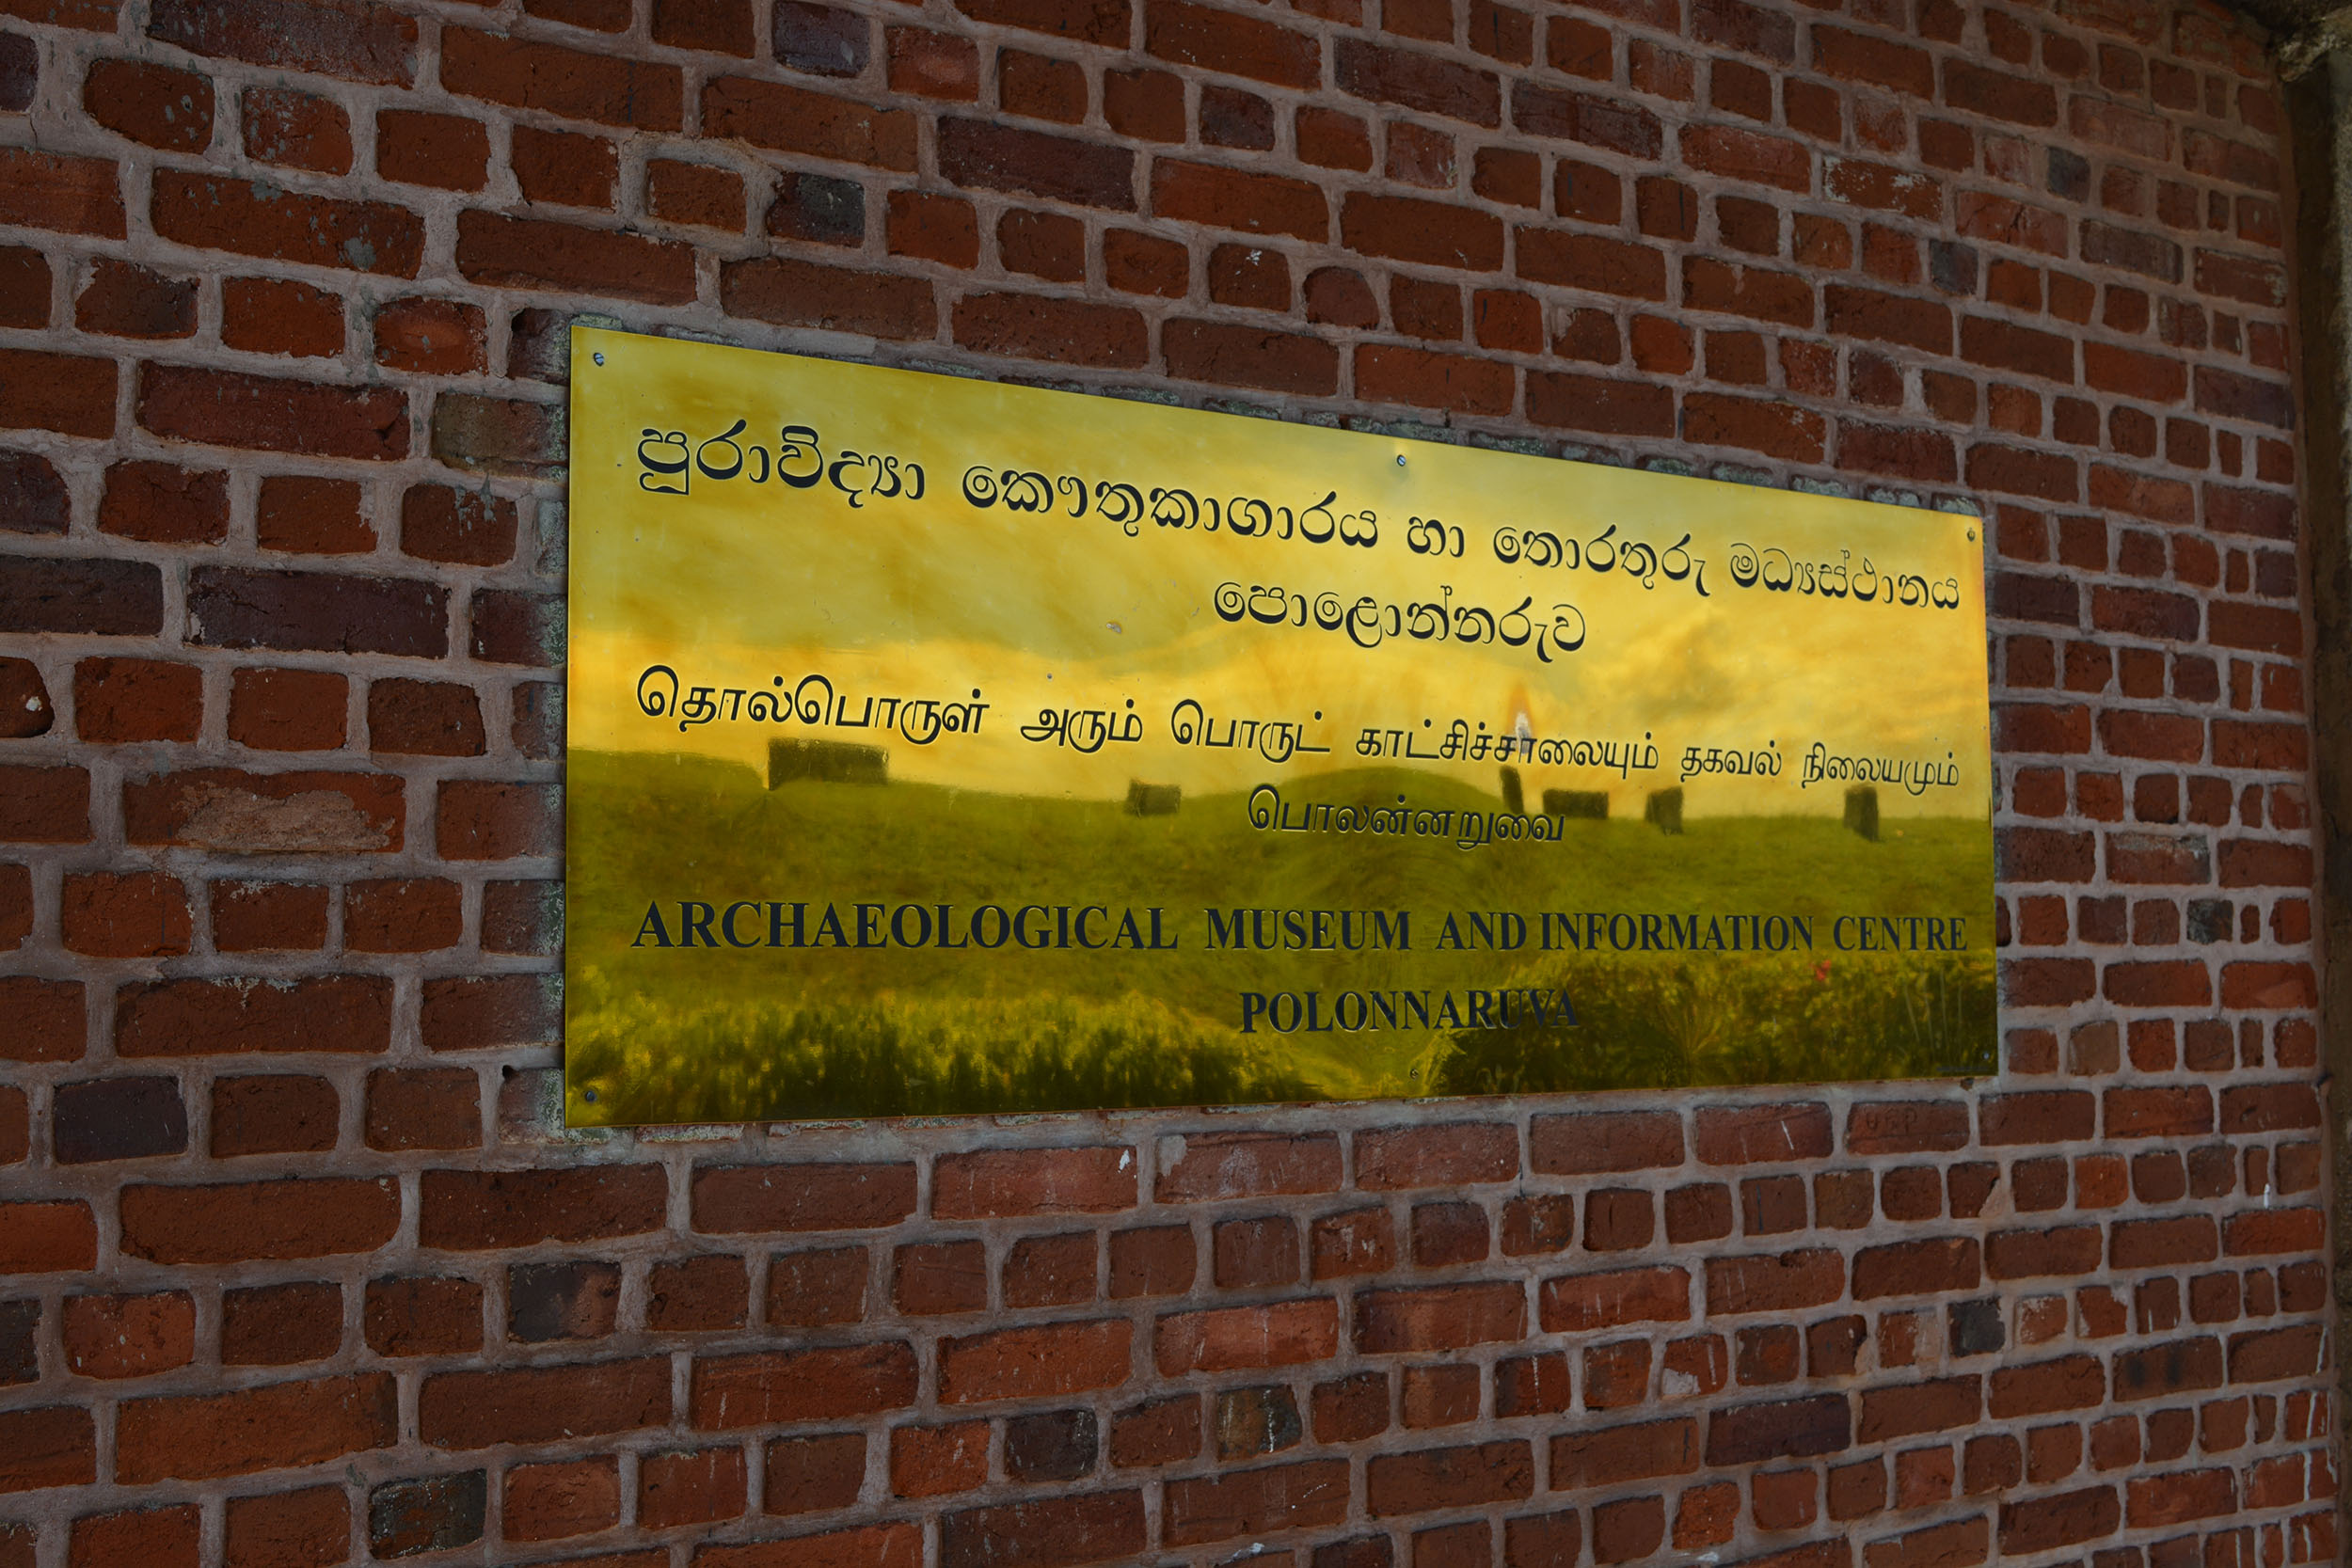 Three main languages in Sri Lanka - Sinhalese, Tamil and English